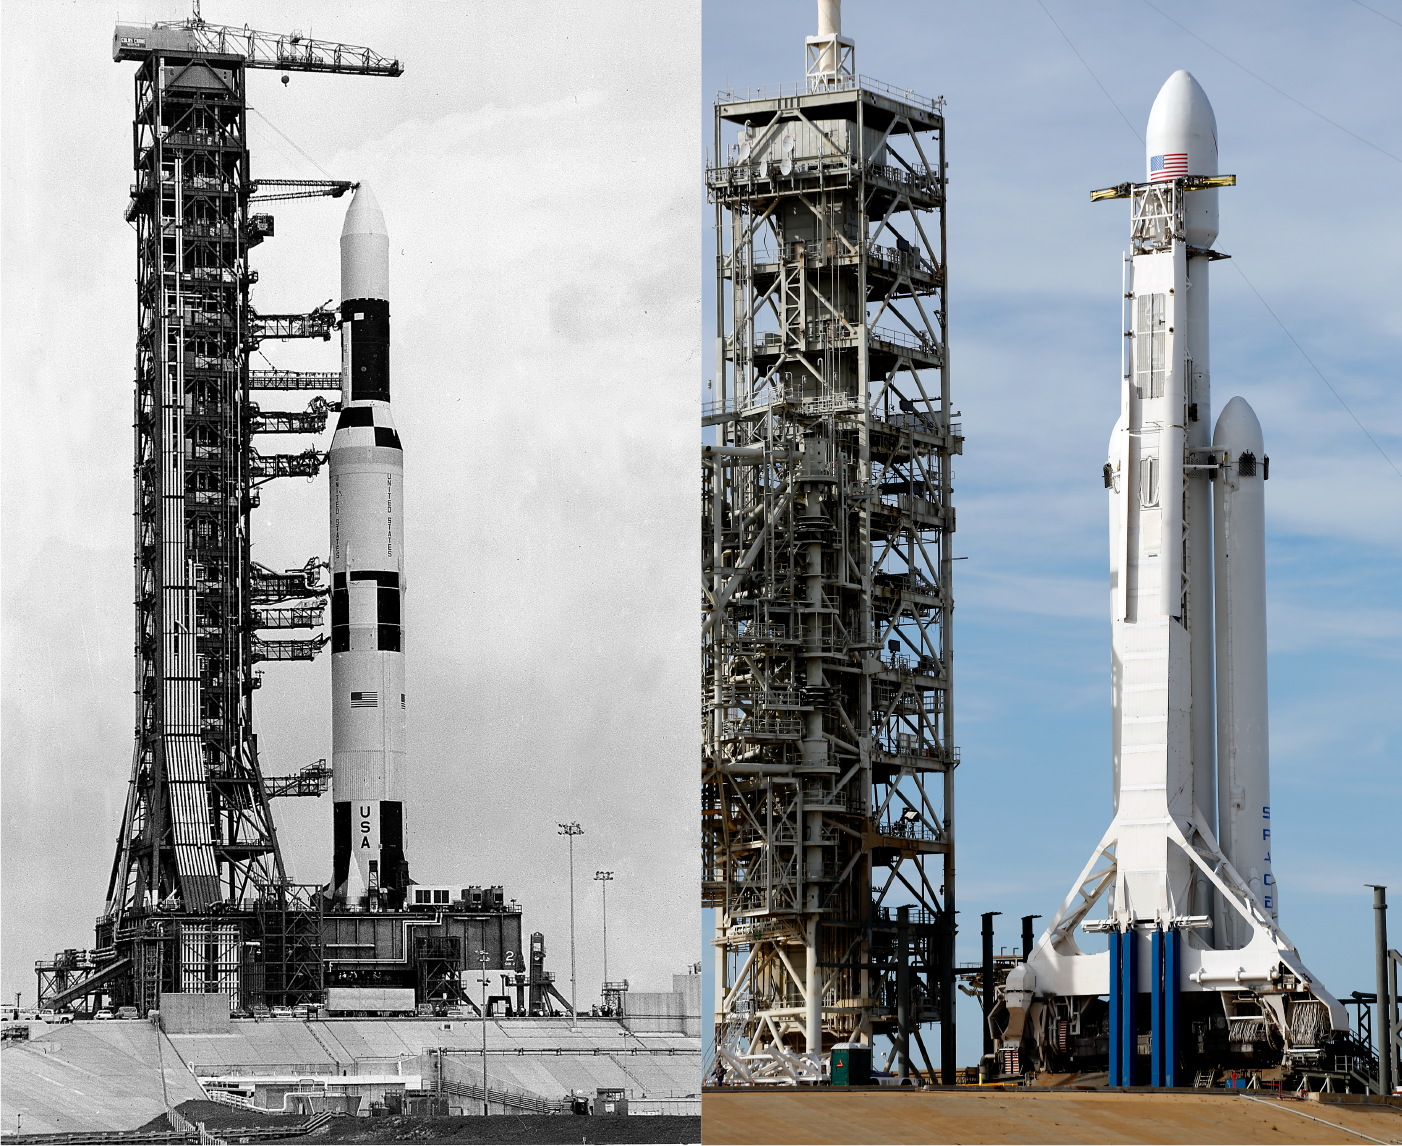 SpaceX's Falcon Heavy is a big rocket. NASA's Saturn V was ...